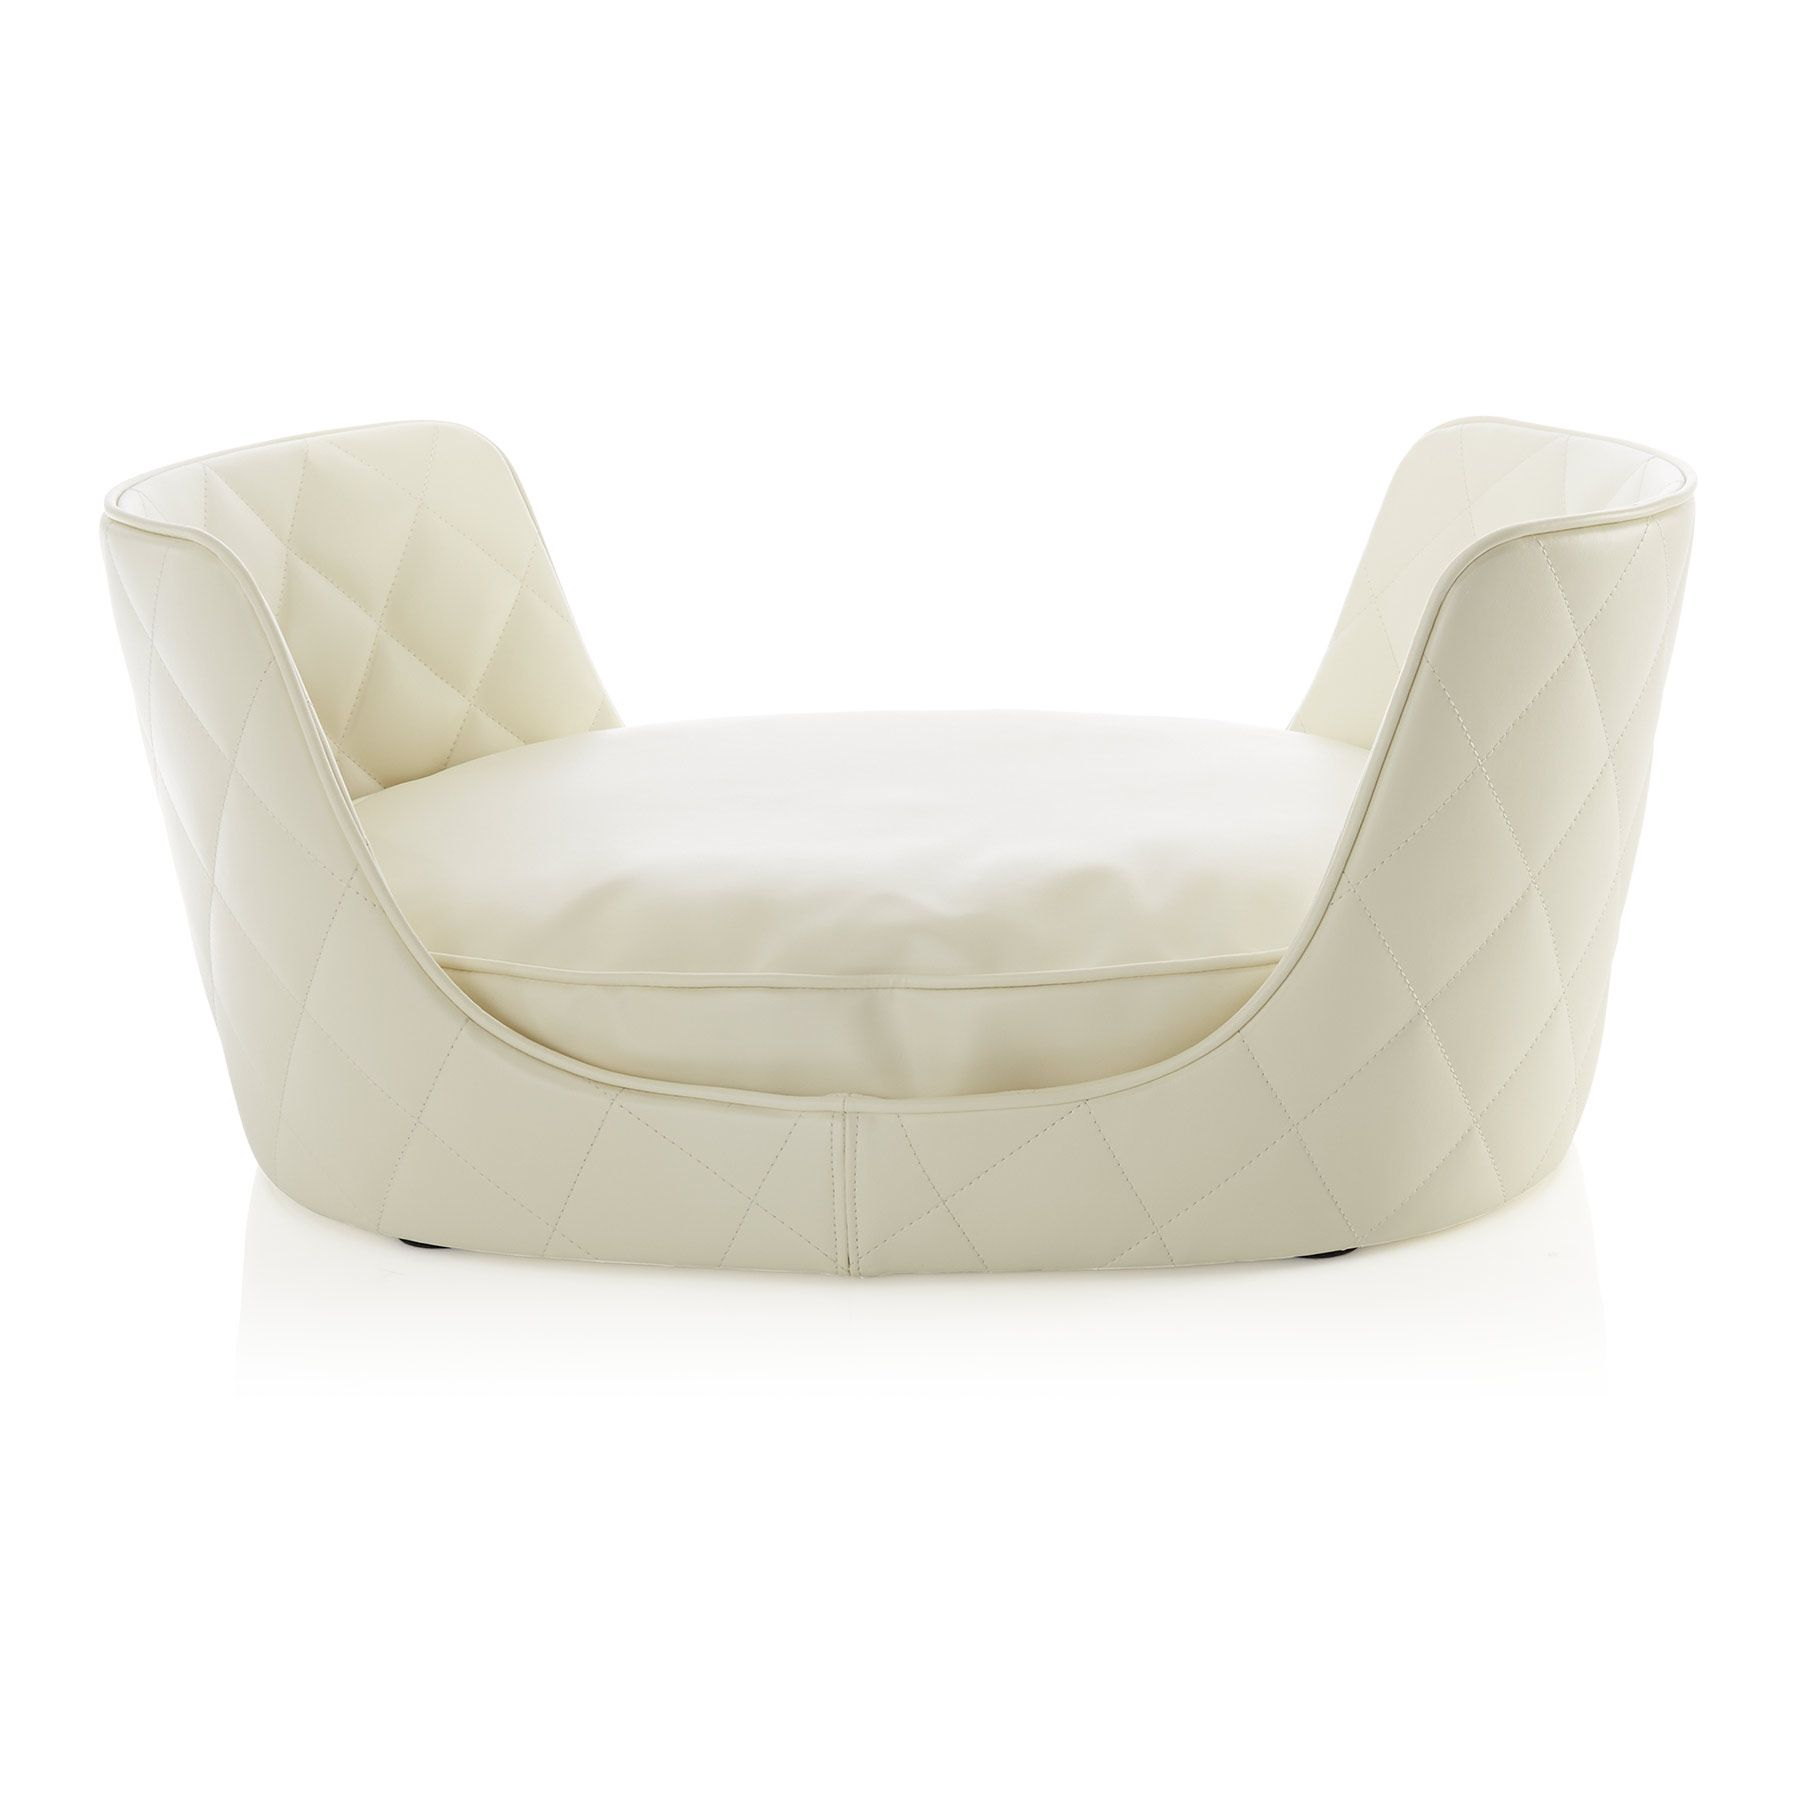 Superb Bed Coco Cream A Dogs Bed That Is Not Just For Kneeling On Pabps2019 Chair Design Images Pabps2019Com